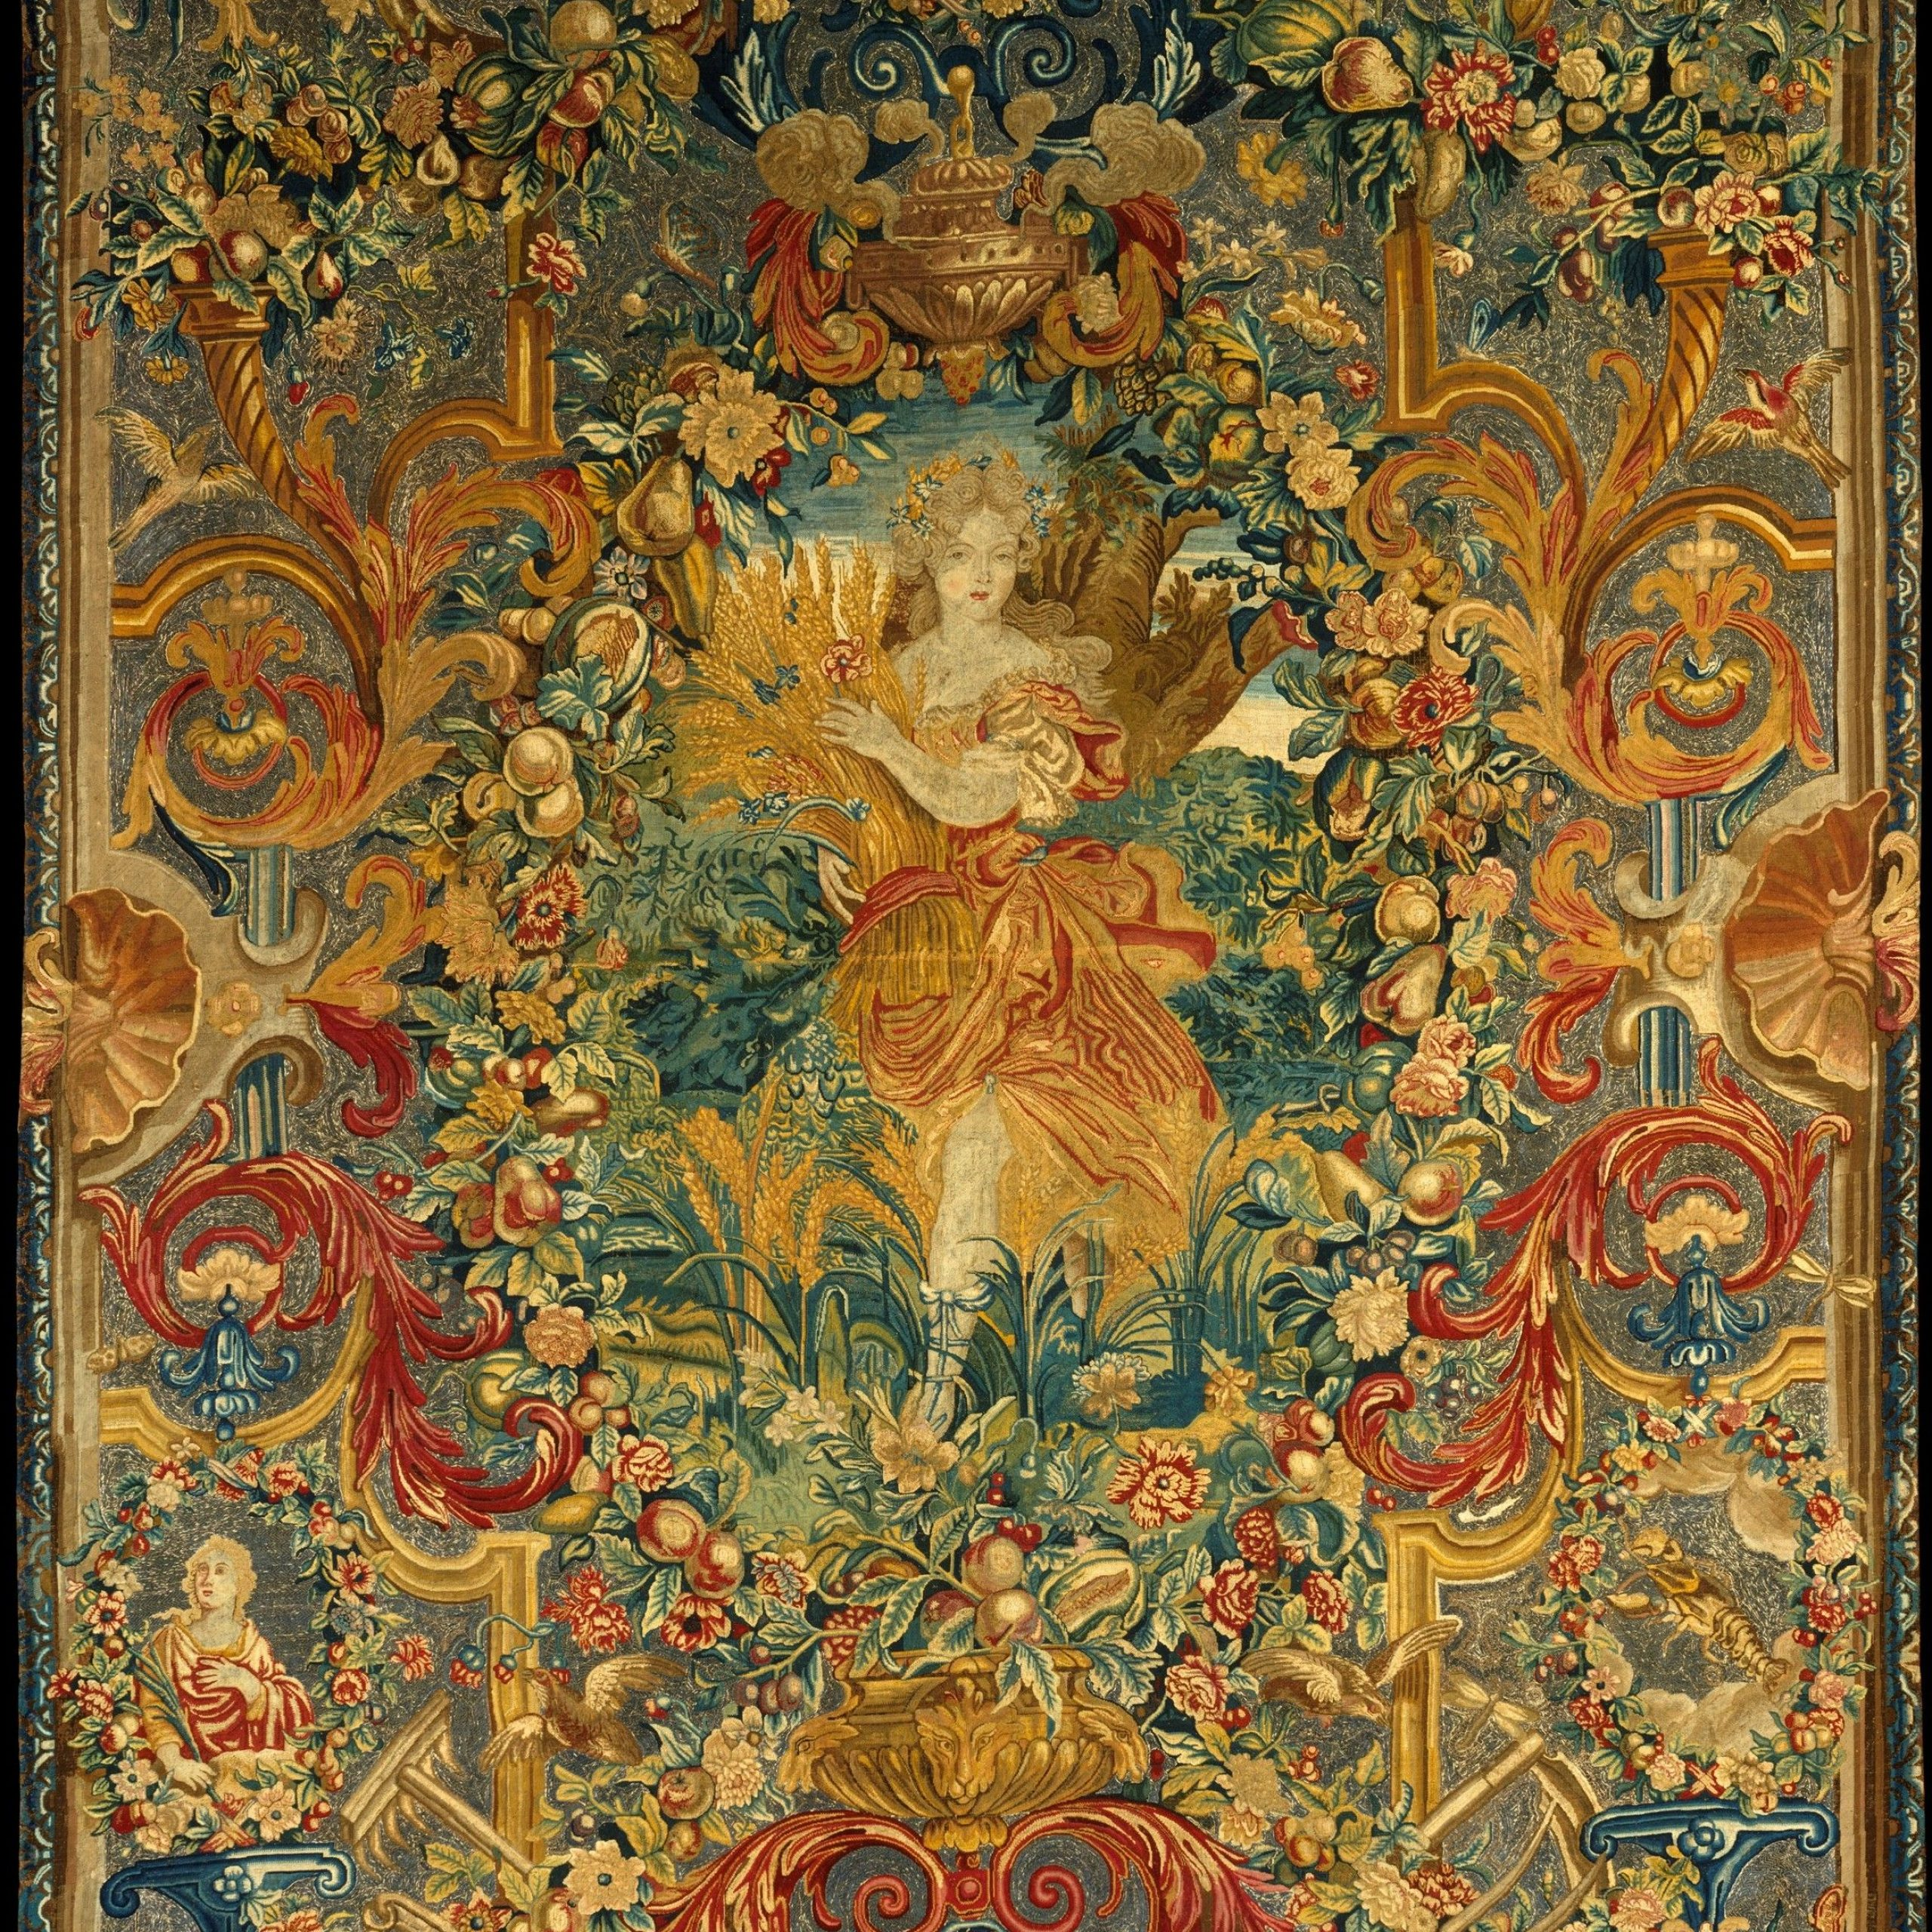 Tapestry, Art, Medieval Tapestry In Latest Blended Fabric Saint Joseph European Tapestries (View 17 of 20)